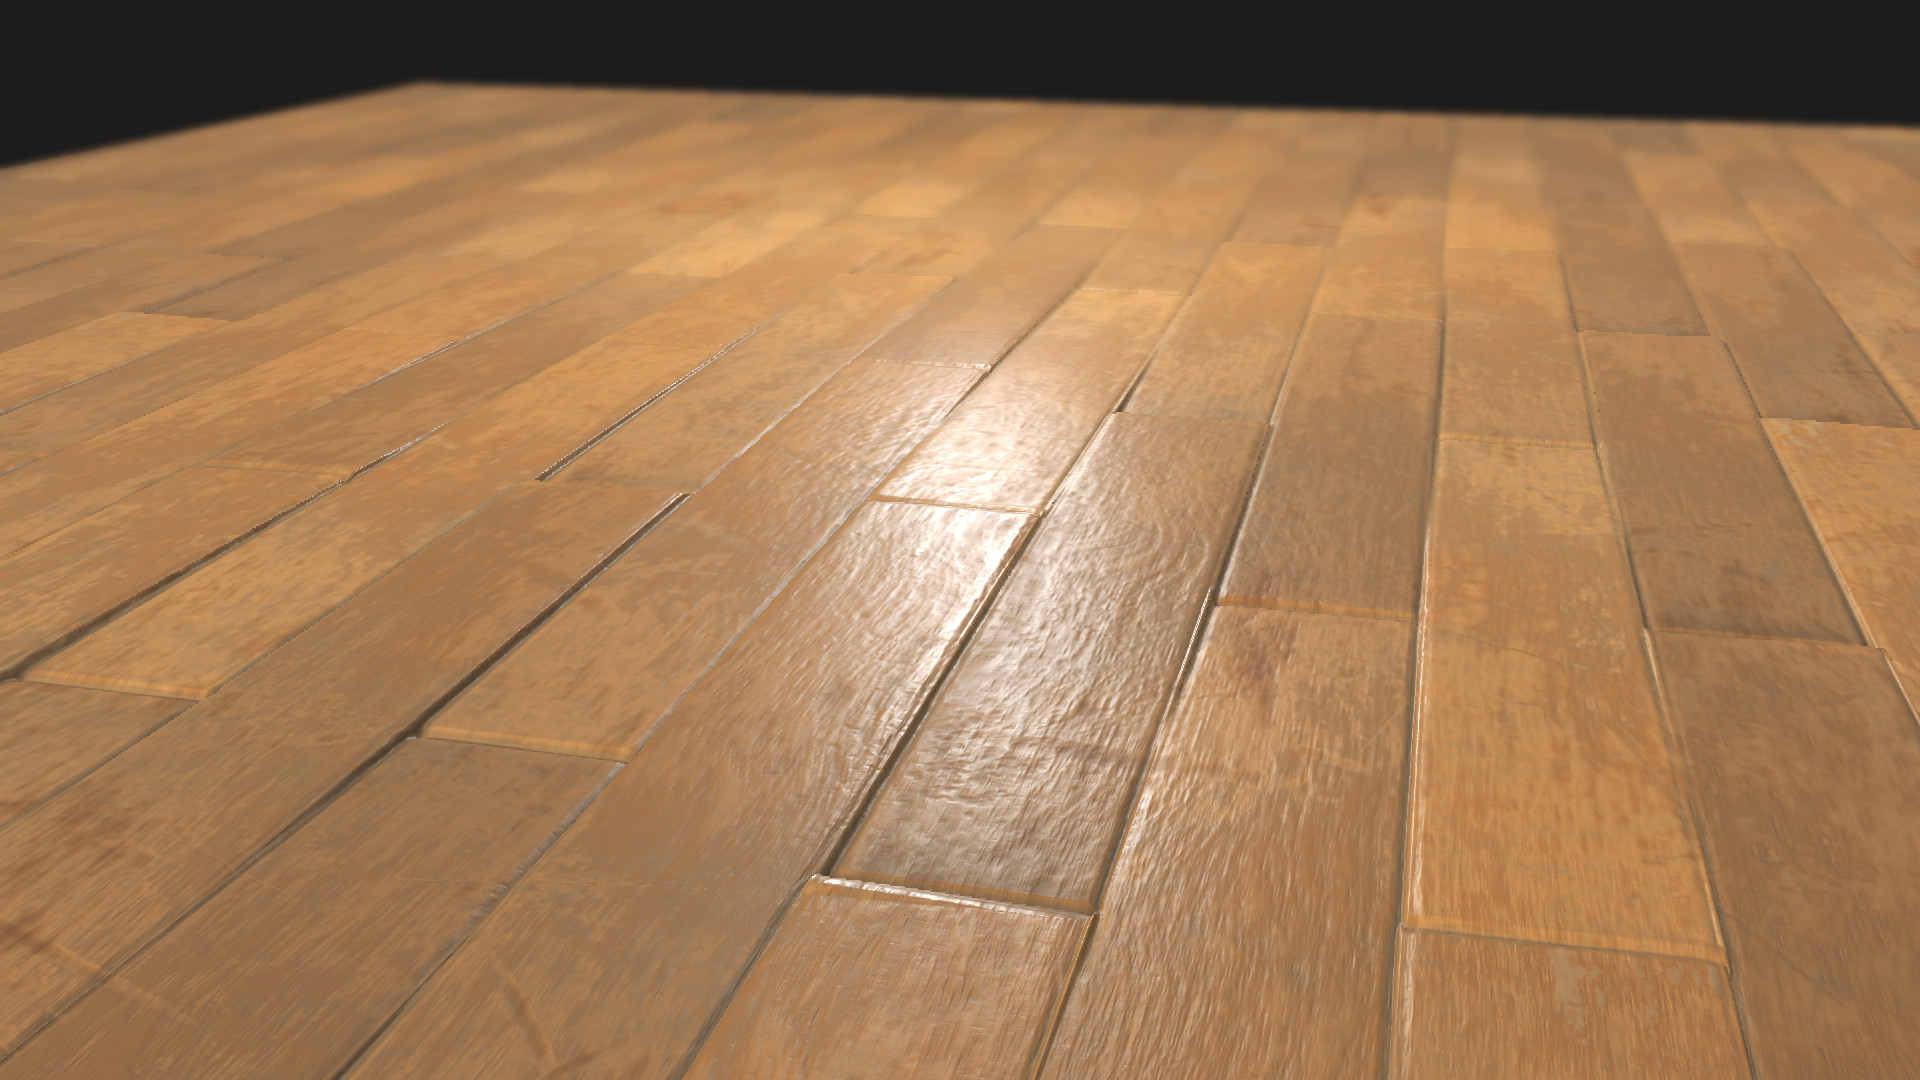 Ole midthun wood floor 3